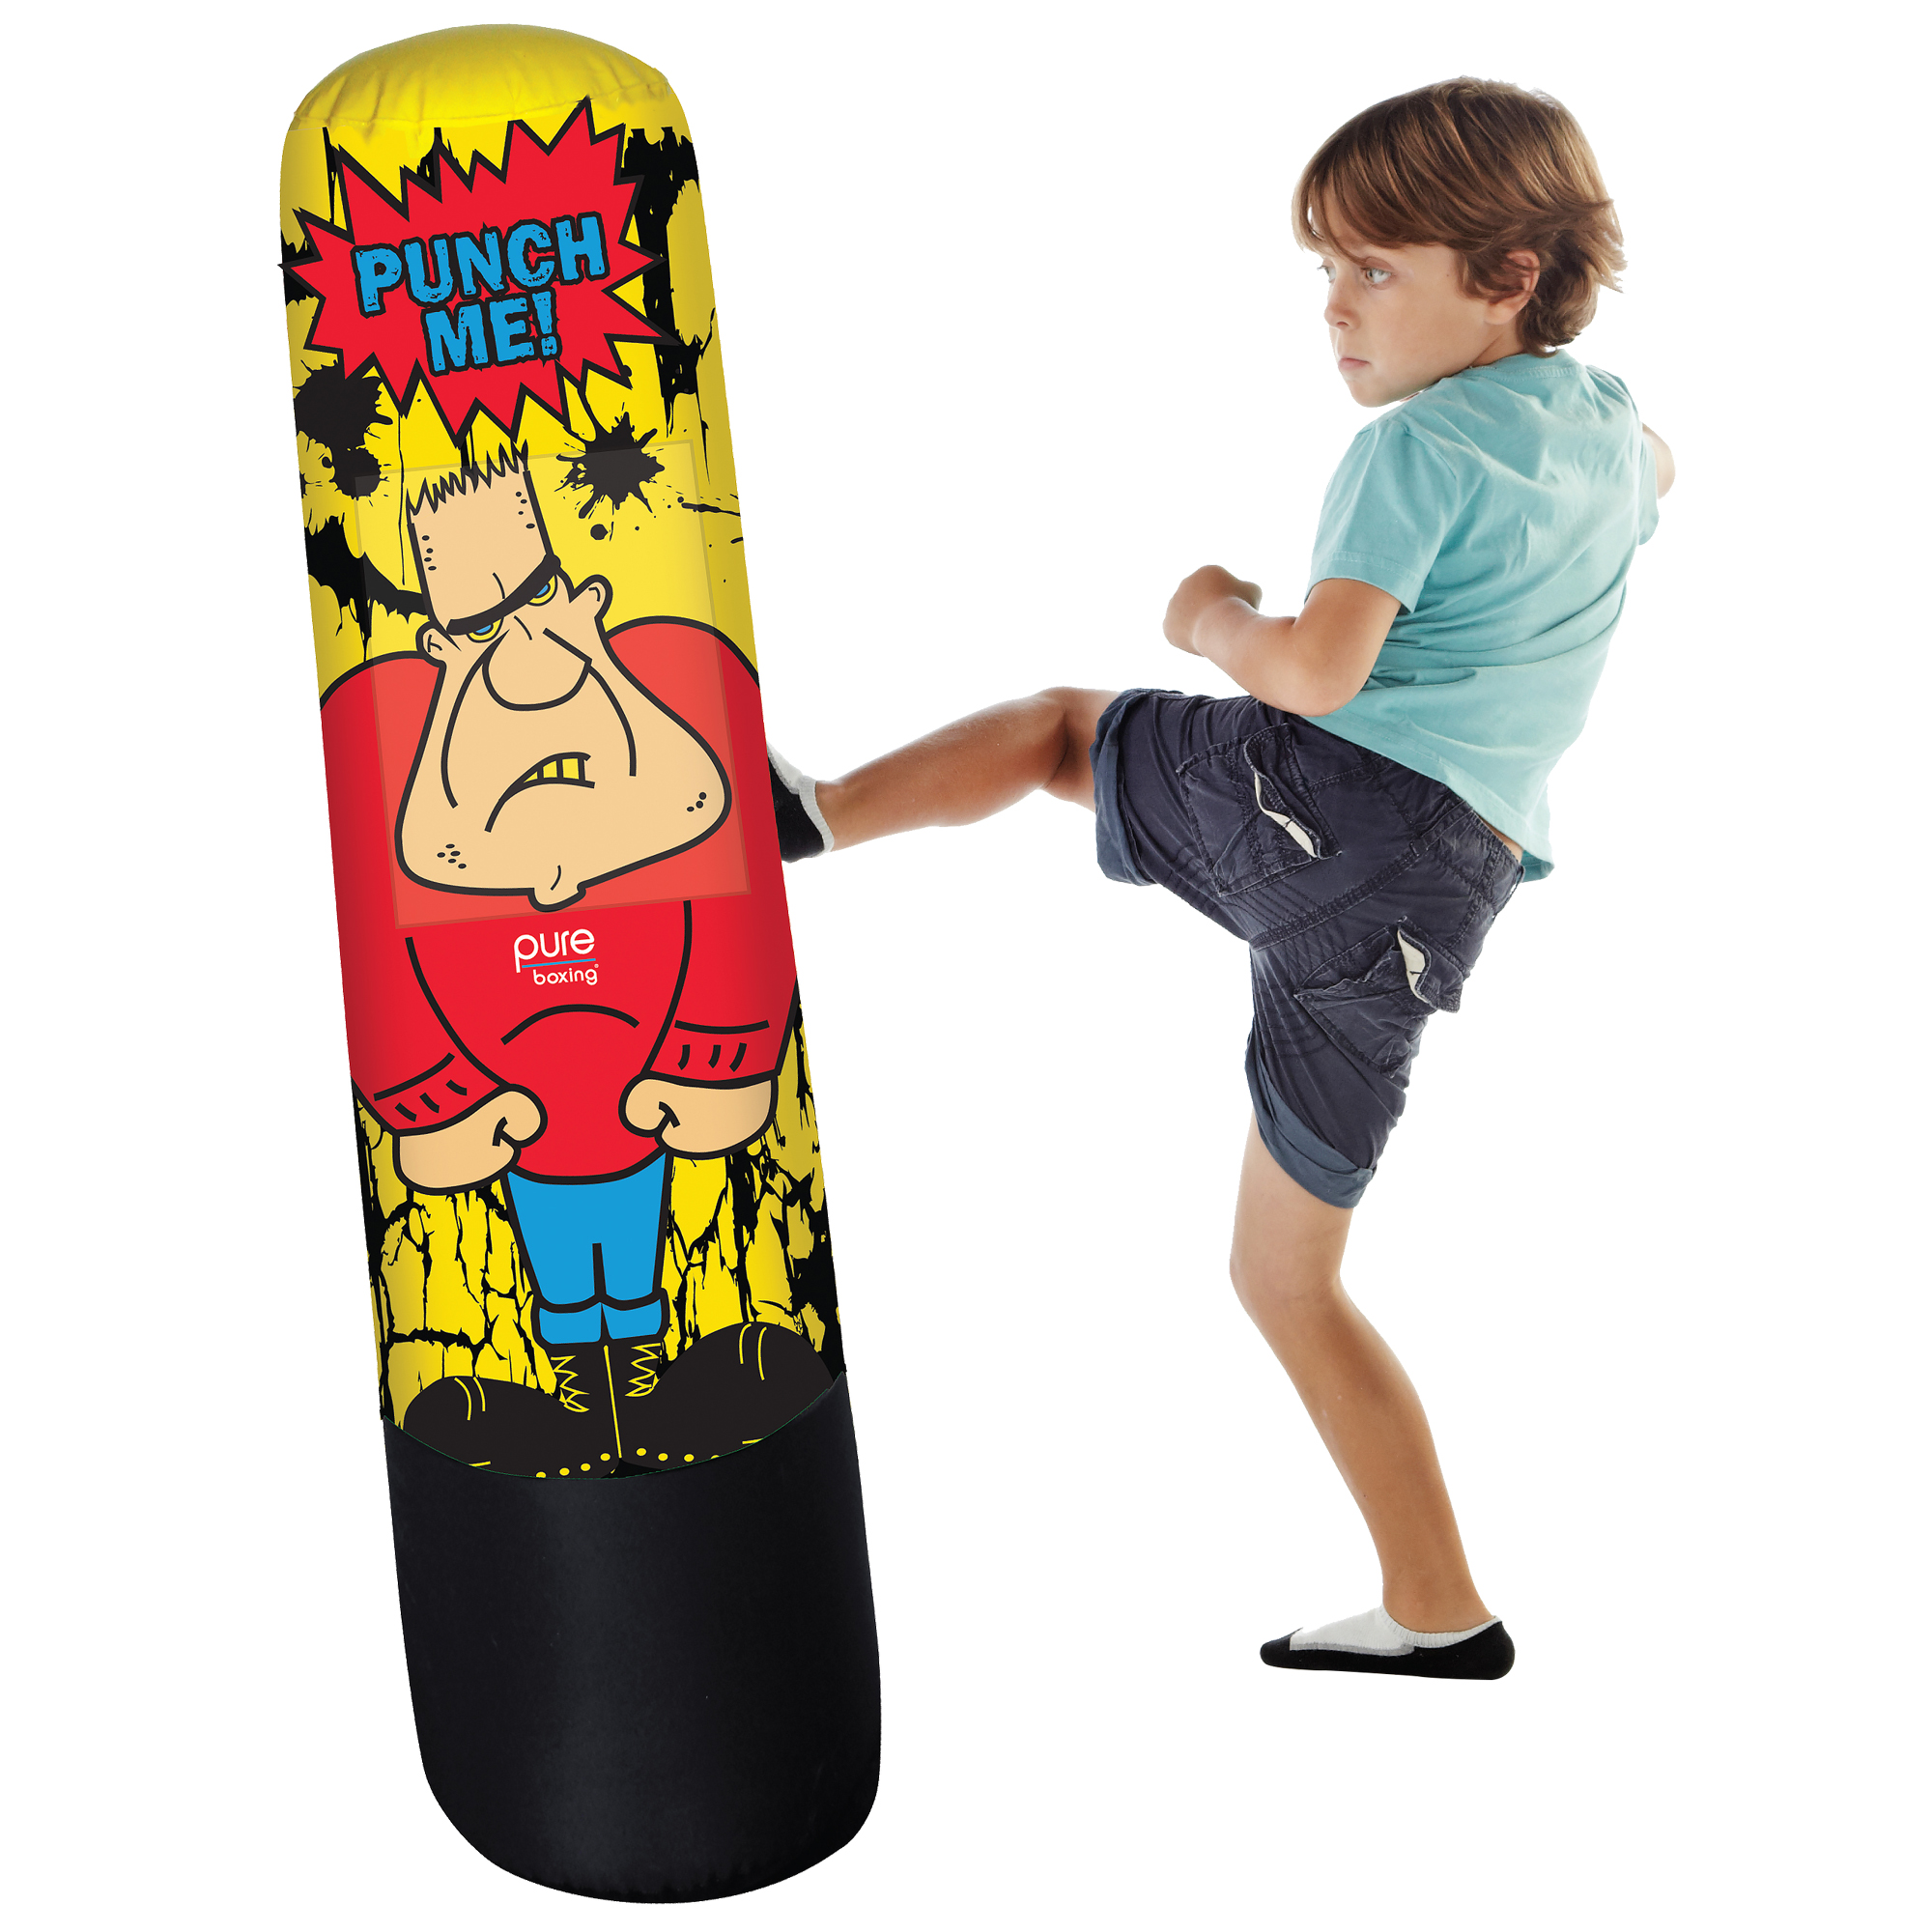 Pure Boxing Bully Bag Inflatable Punching Bag - 8915BB - Lifestyle